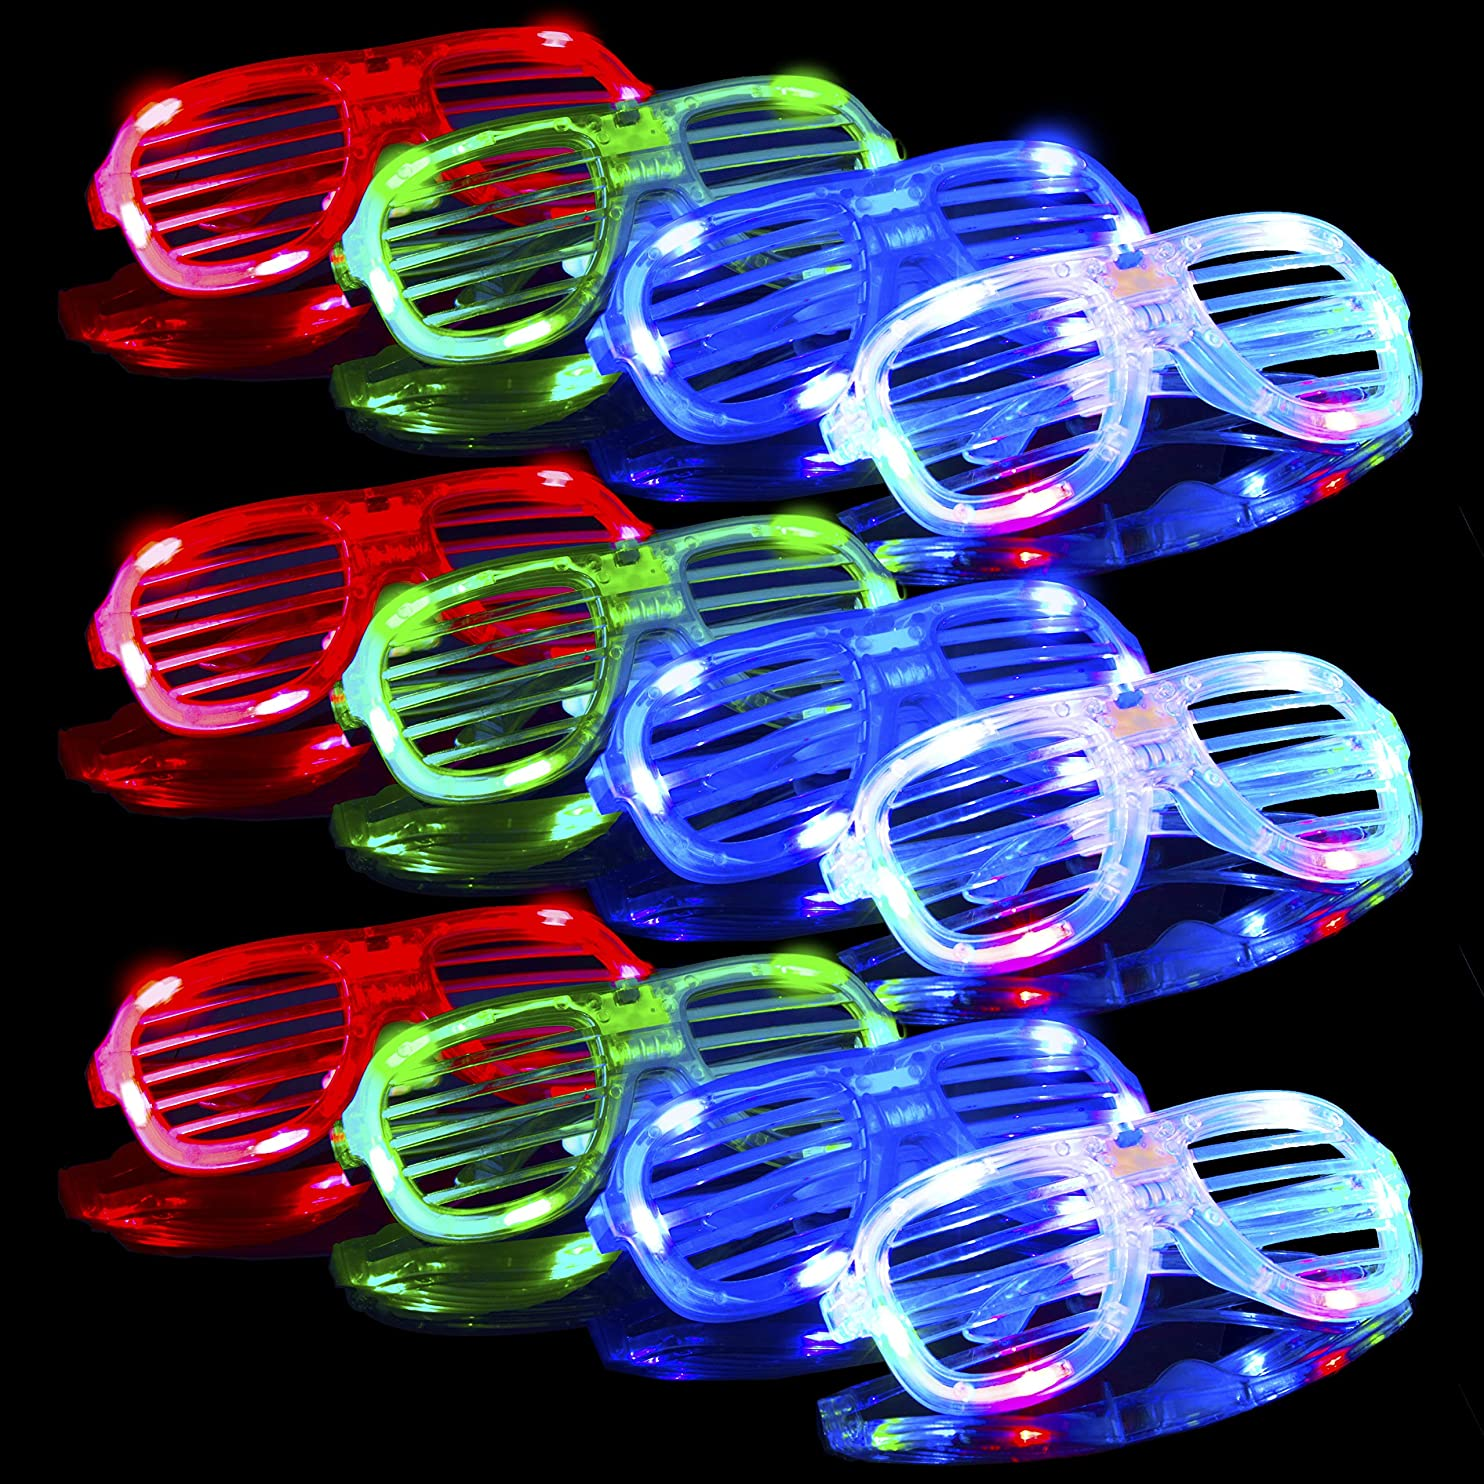 Glow in The Dark LED Glasses – Bulk Light Up Glasses, Neon Party Supplies Party Favors, LED Sunglasses Shutter Shades Accessories (12pk) twdnhiqvdys21